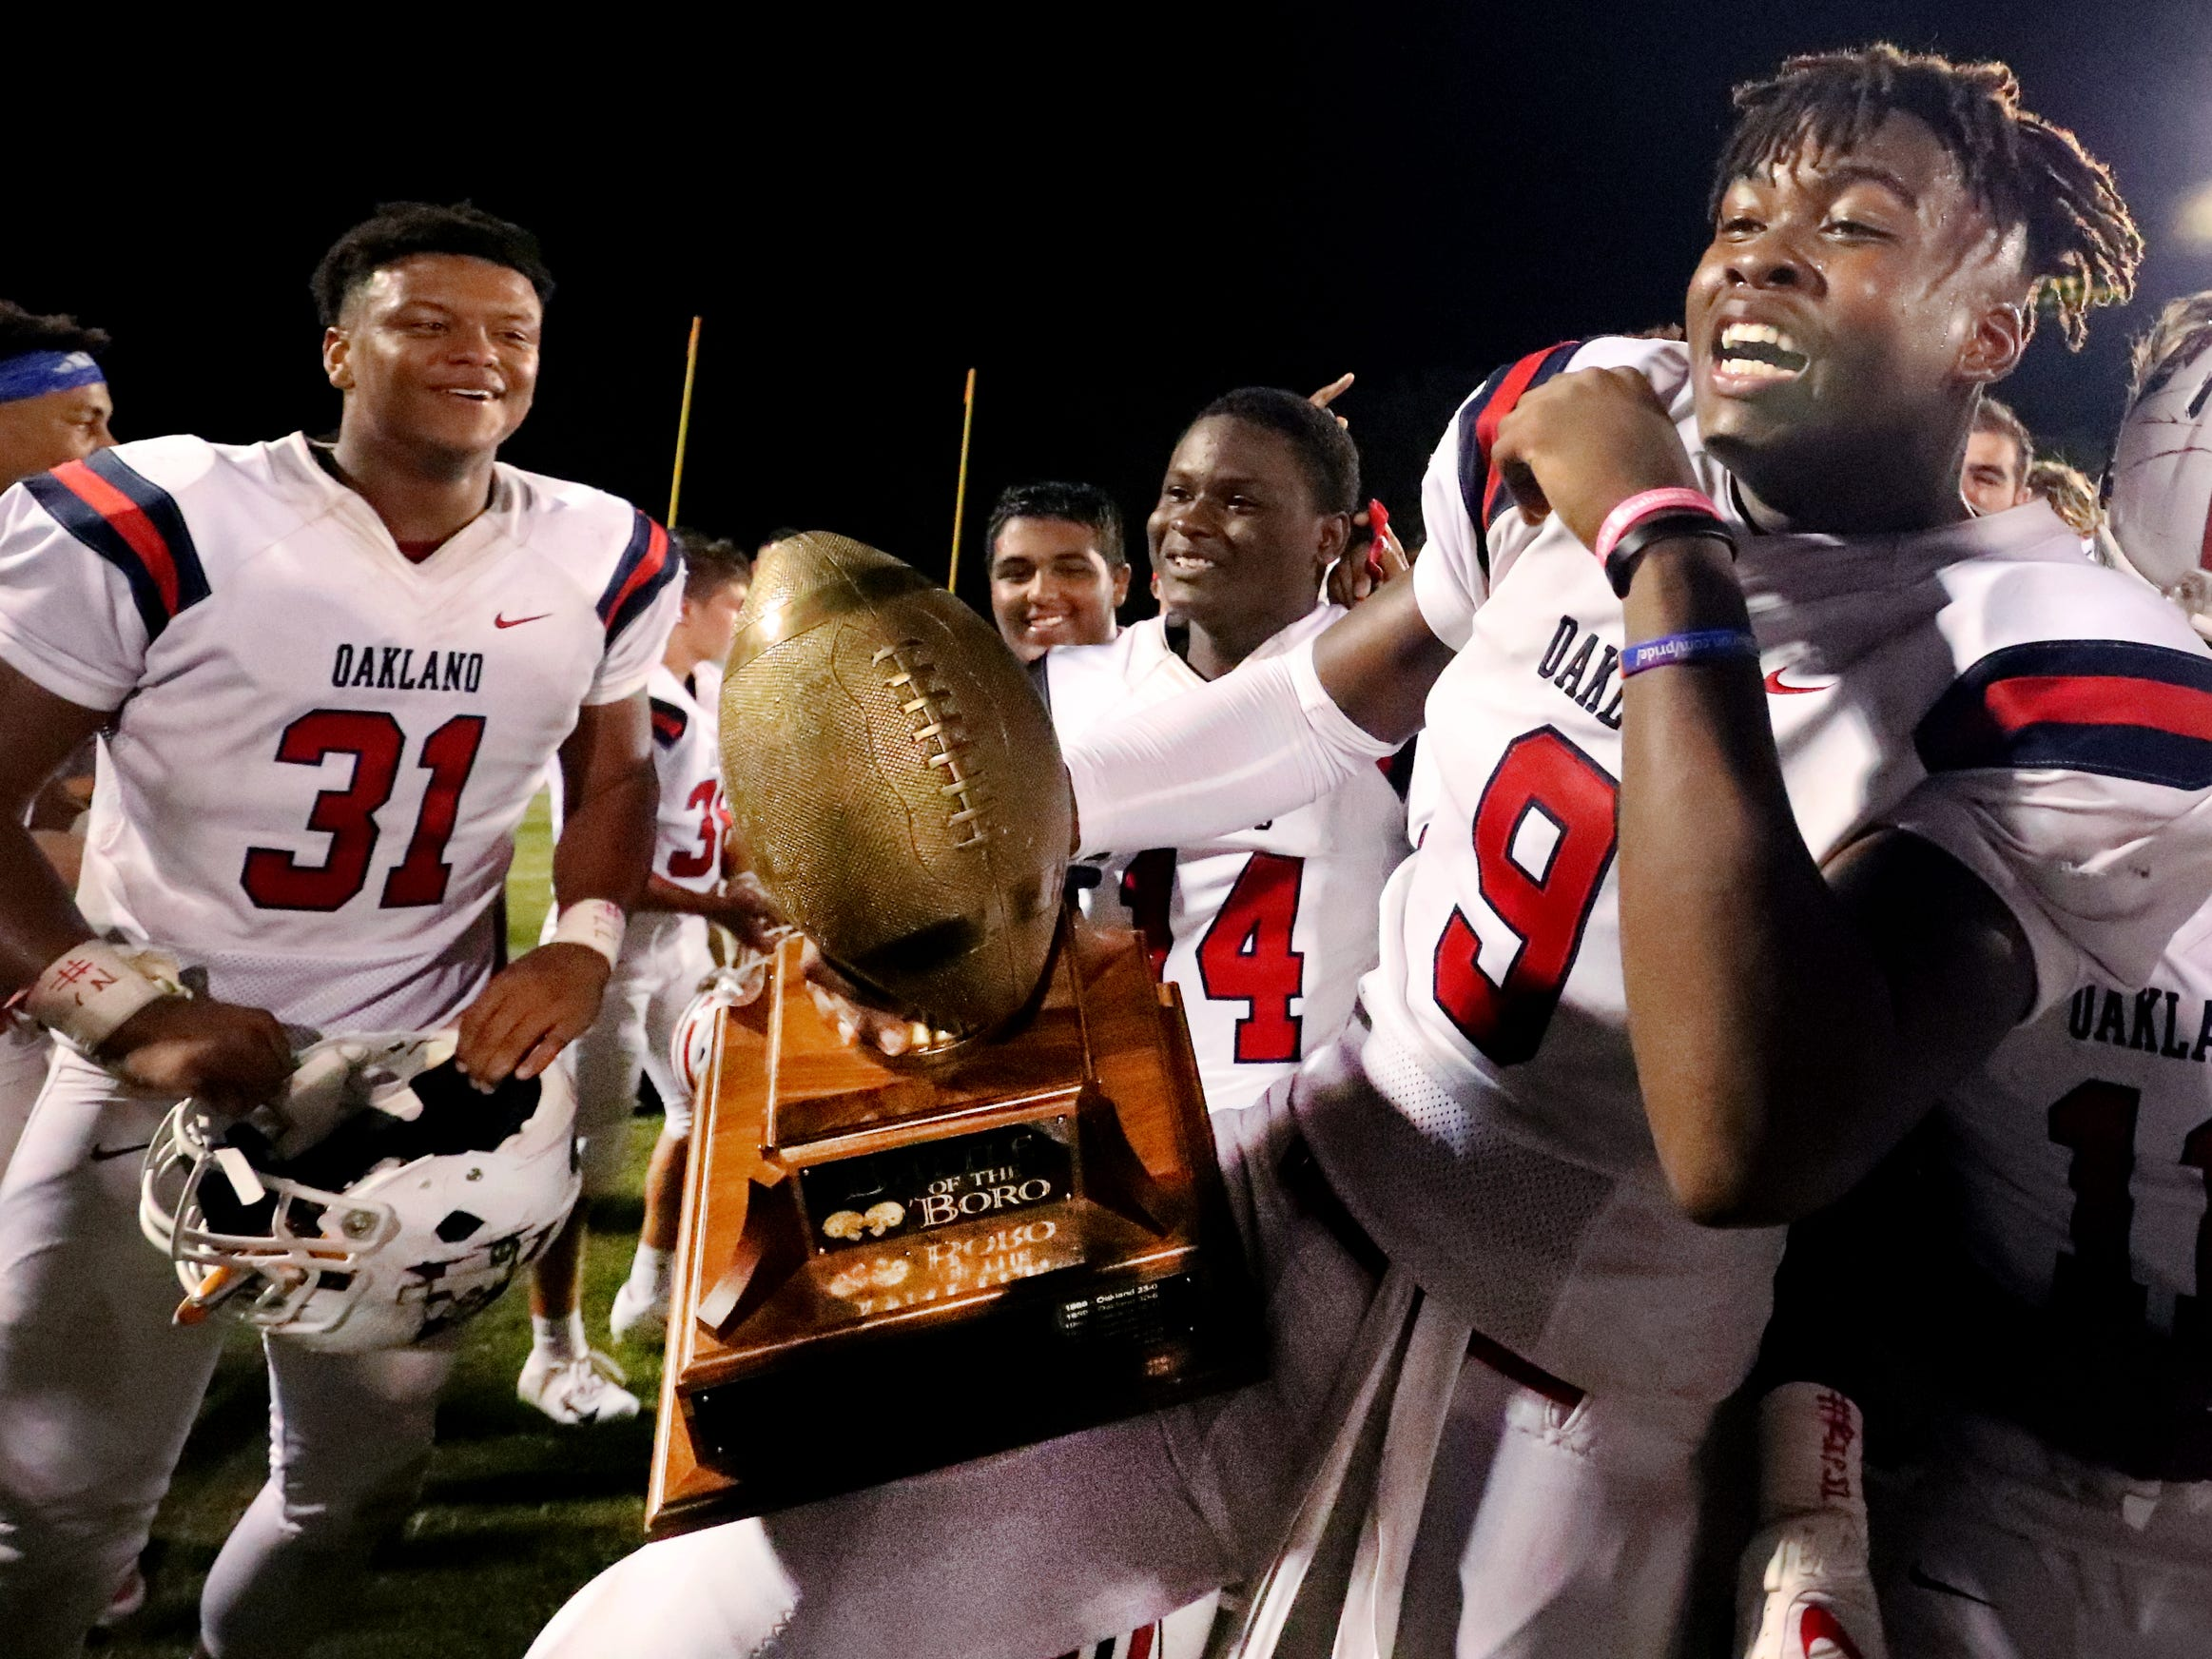 Oakland's Tekoy Randolph (9) celebrates the teams win with the Battle of the Boro trophy after beating Riverdale 49-6 during the Battle of the Boro on Friday, Sept. 14, 2018.